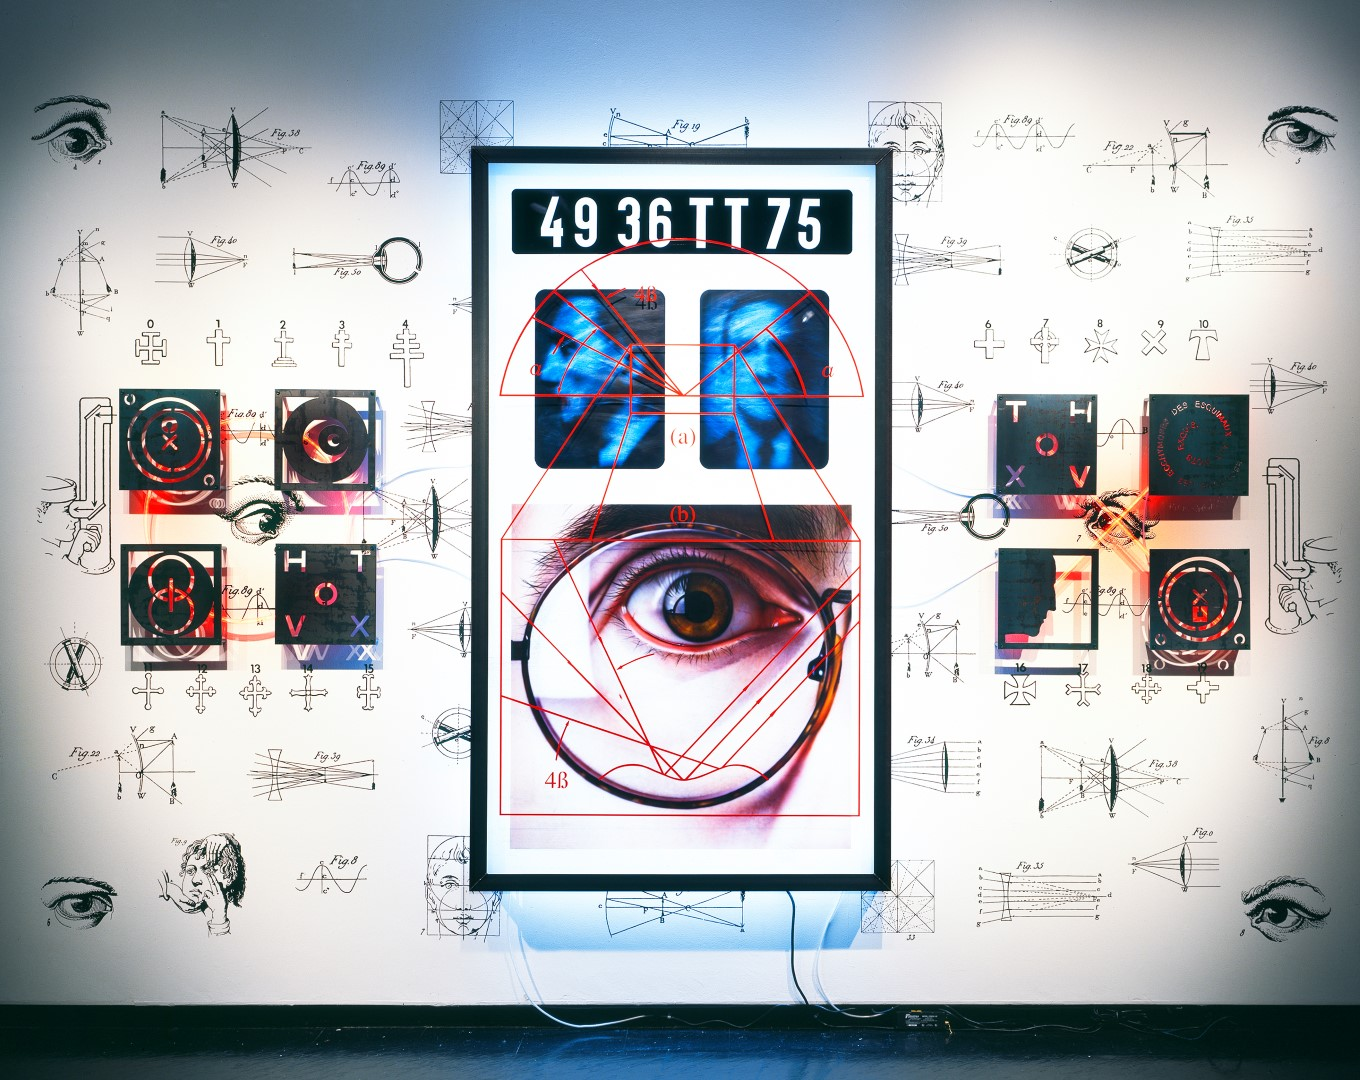 Richard Heipp, 'Cultural Strabismus: Vision Faith: Seeing Believing,' 1999, Mixed media, 192x108 inches.